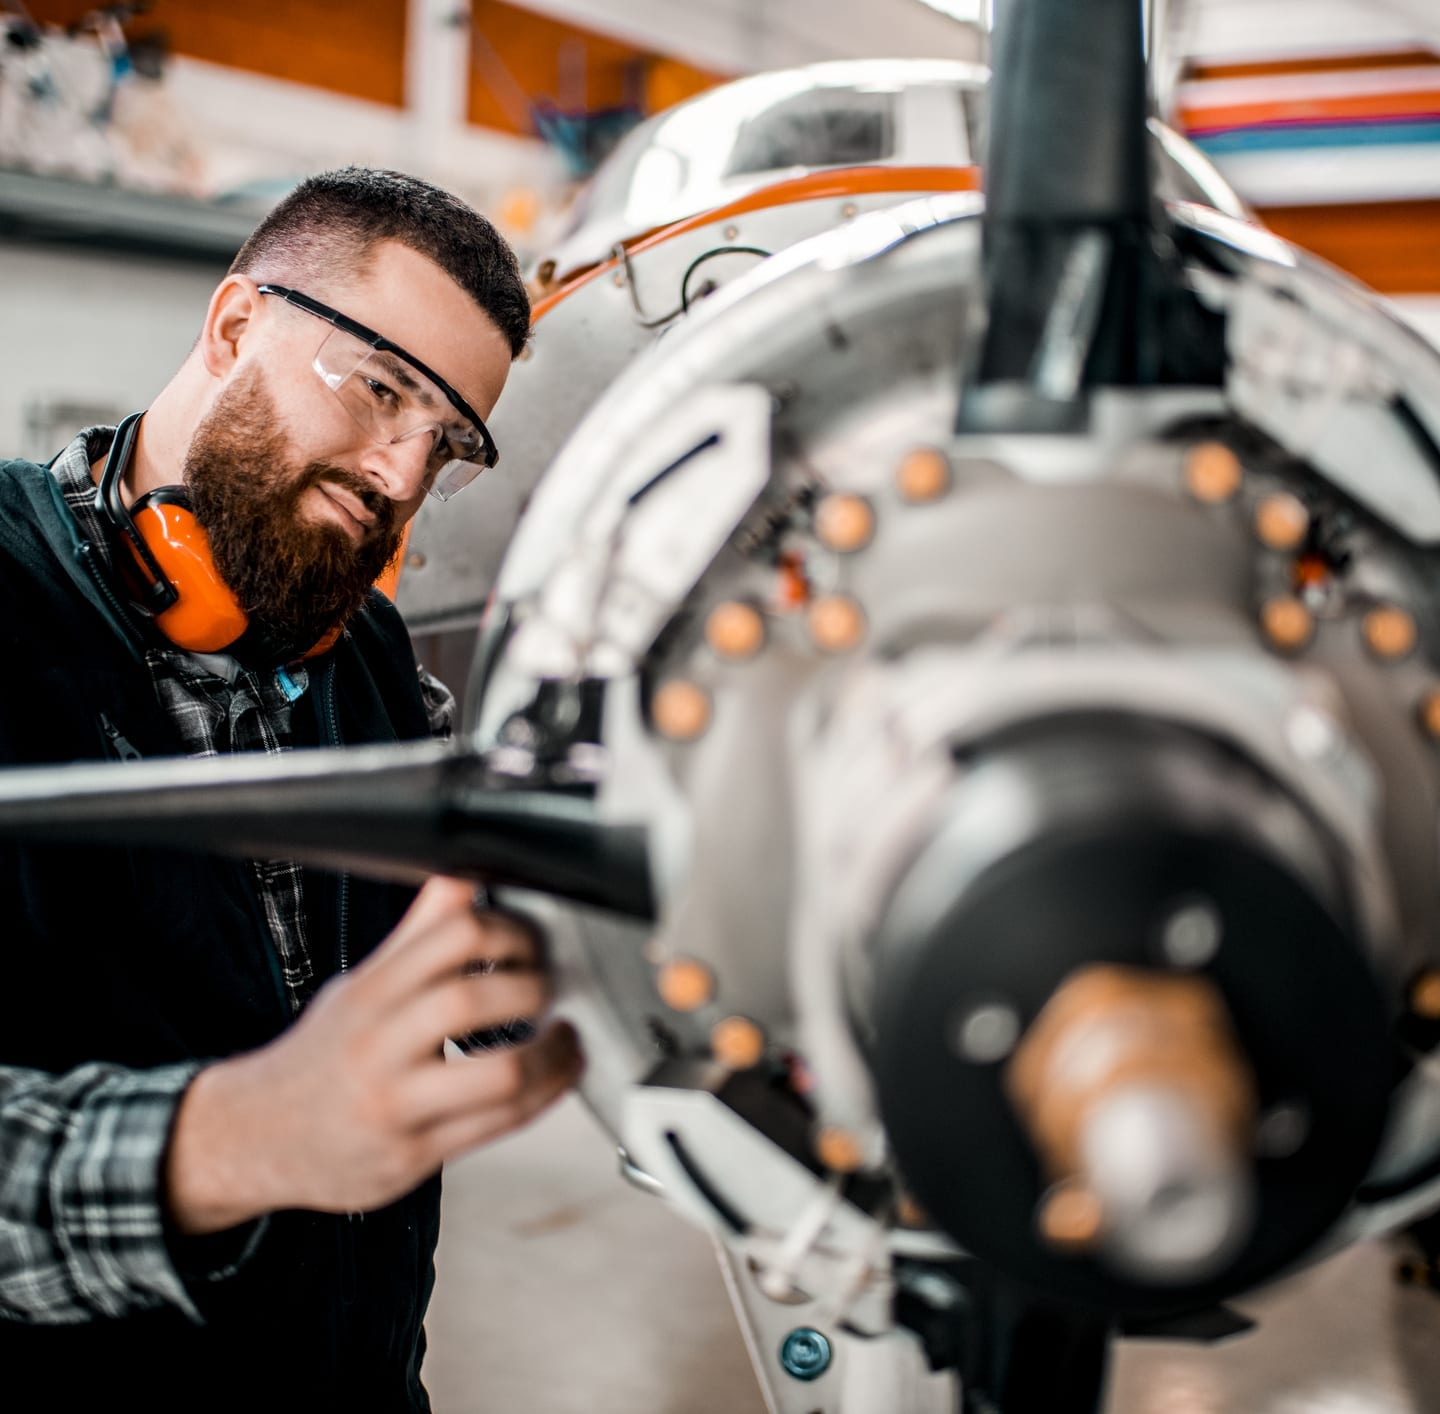 man with ear protection assembling aircraft engine